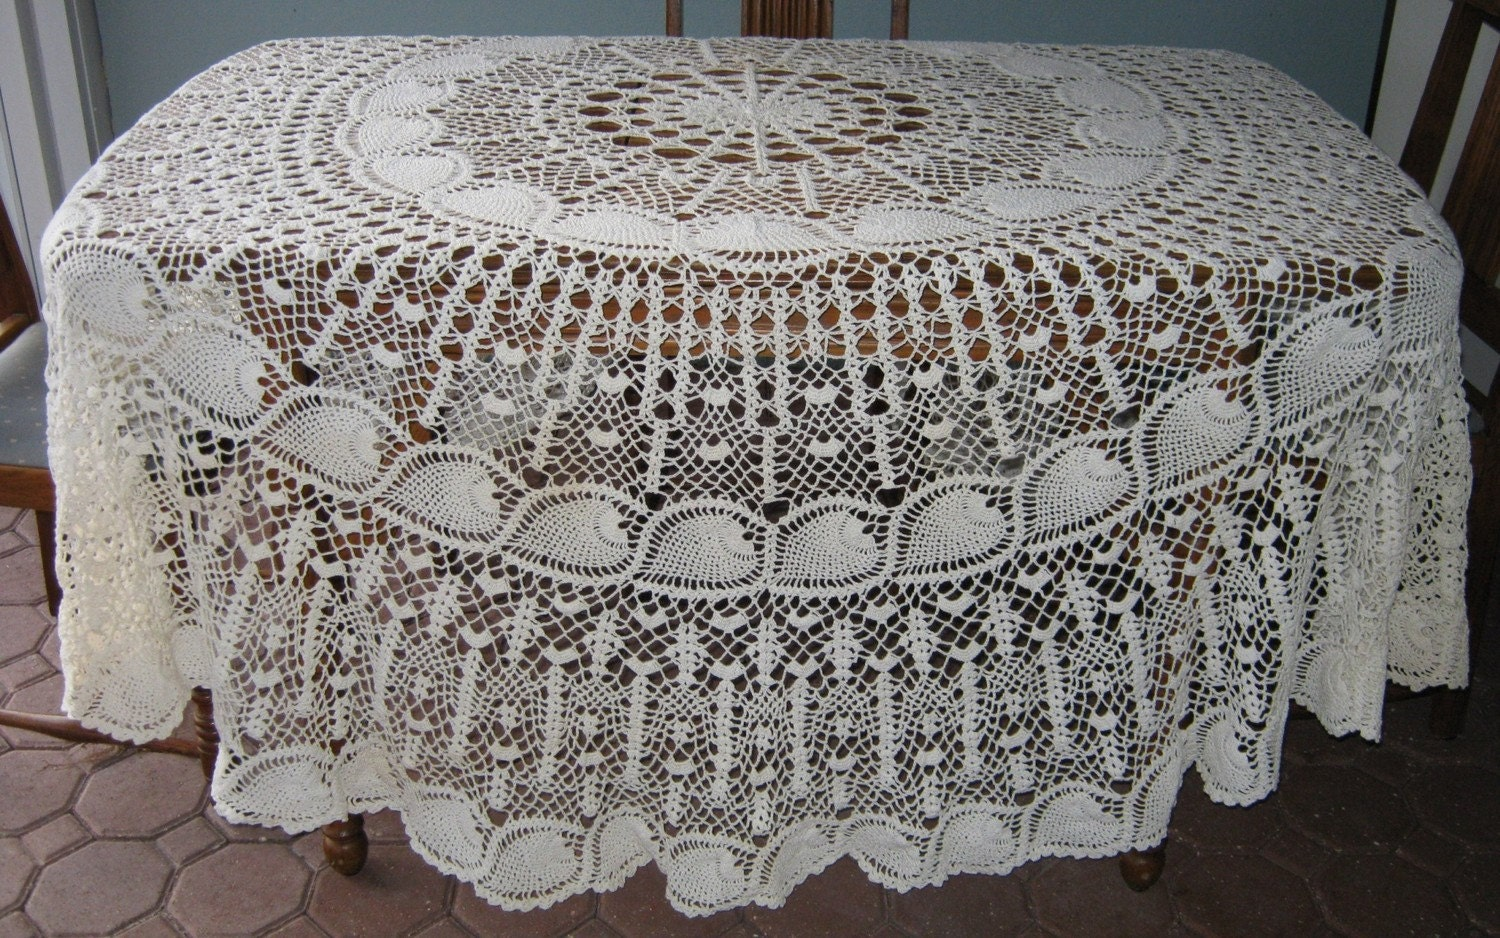 VINTAGE CROCHET ROUND PINEAPPLE PATTERN TABLECLOTH LIKE NEW